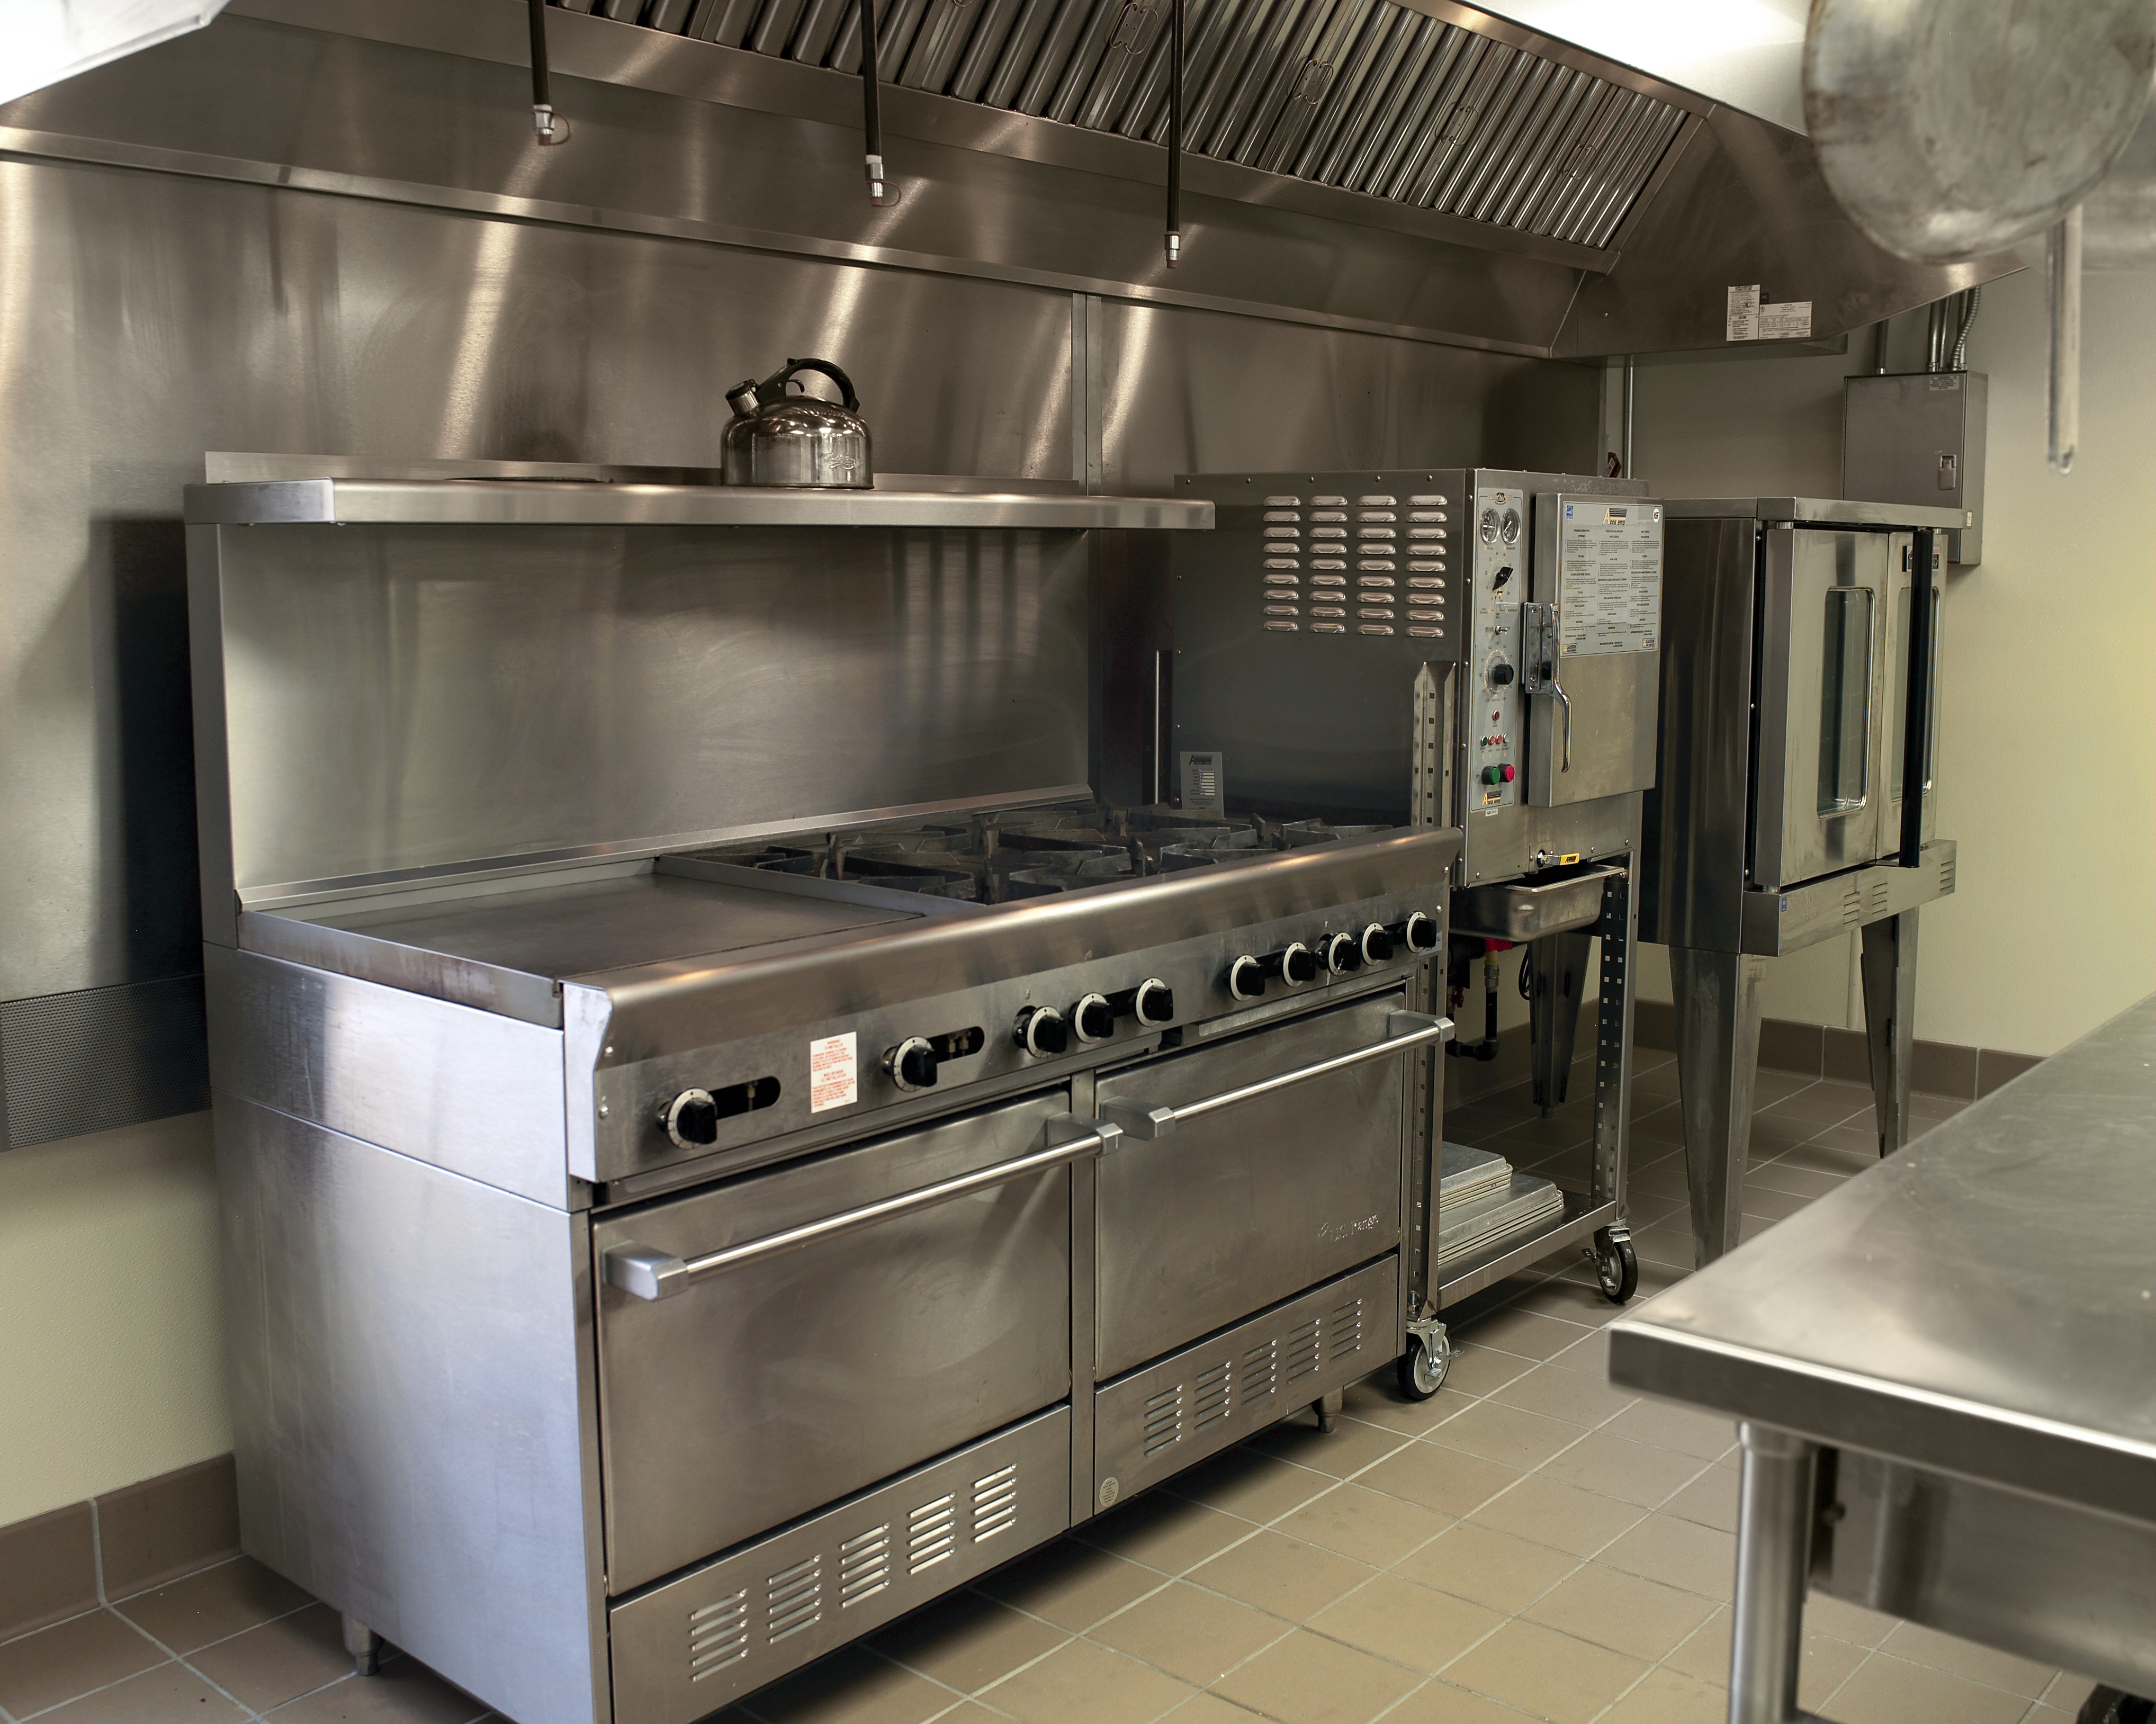 Saving kitchen hood from grease and soot 87